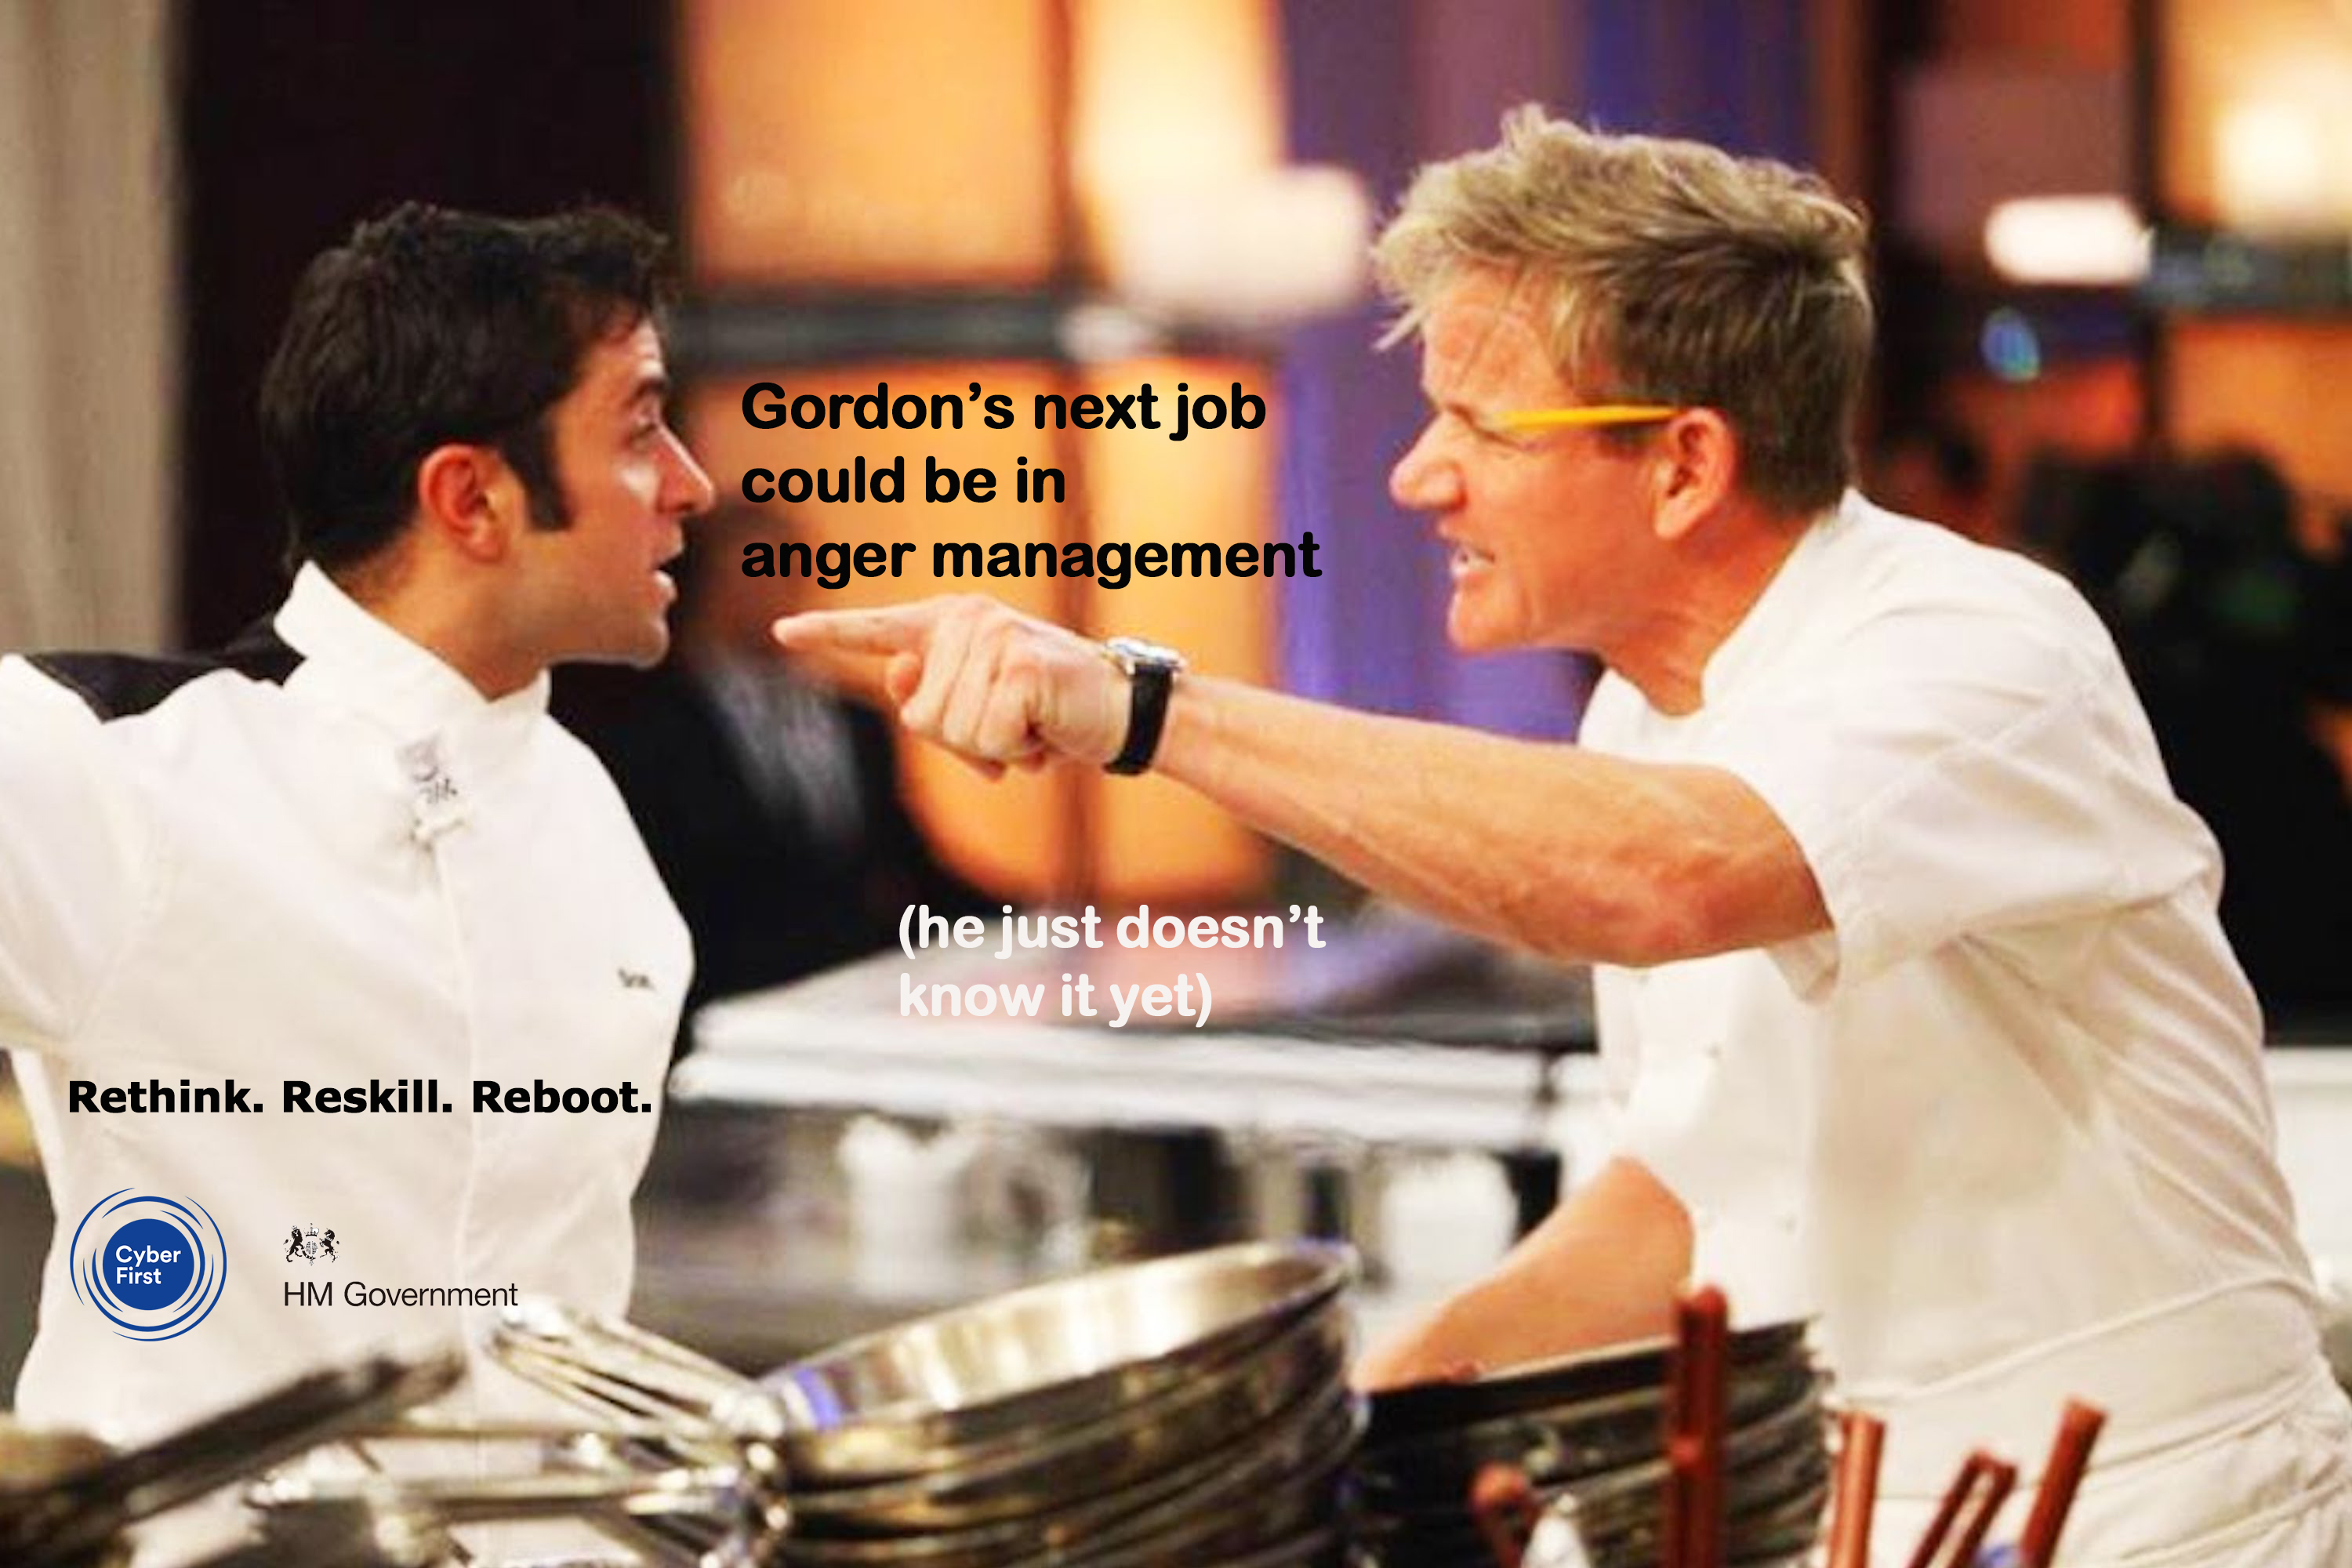 """A picture of Gordon Ramsay shouting on Hell's Kitchen, overlaid with text that reads: """"Gordon's next job could be in anger management. (He just doesn't know it yet)"""